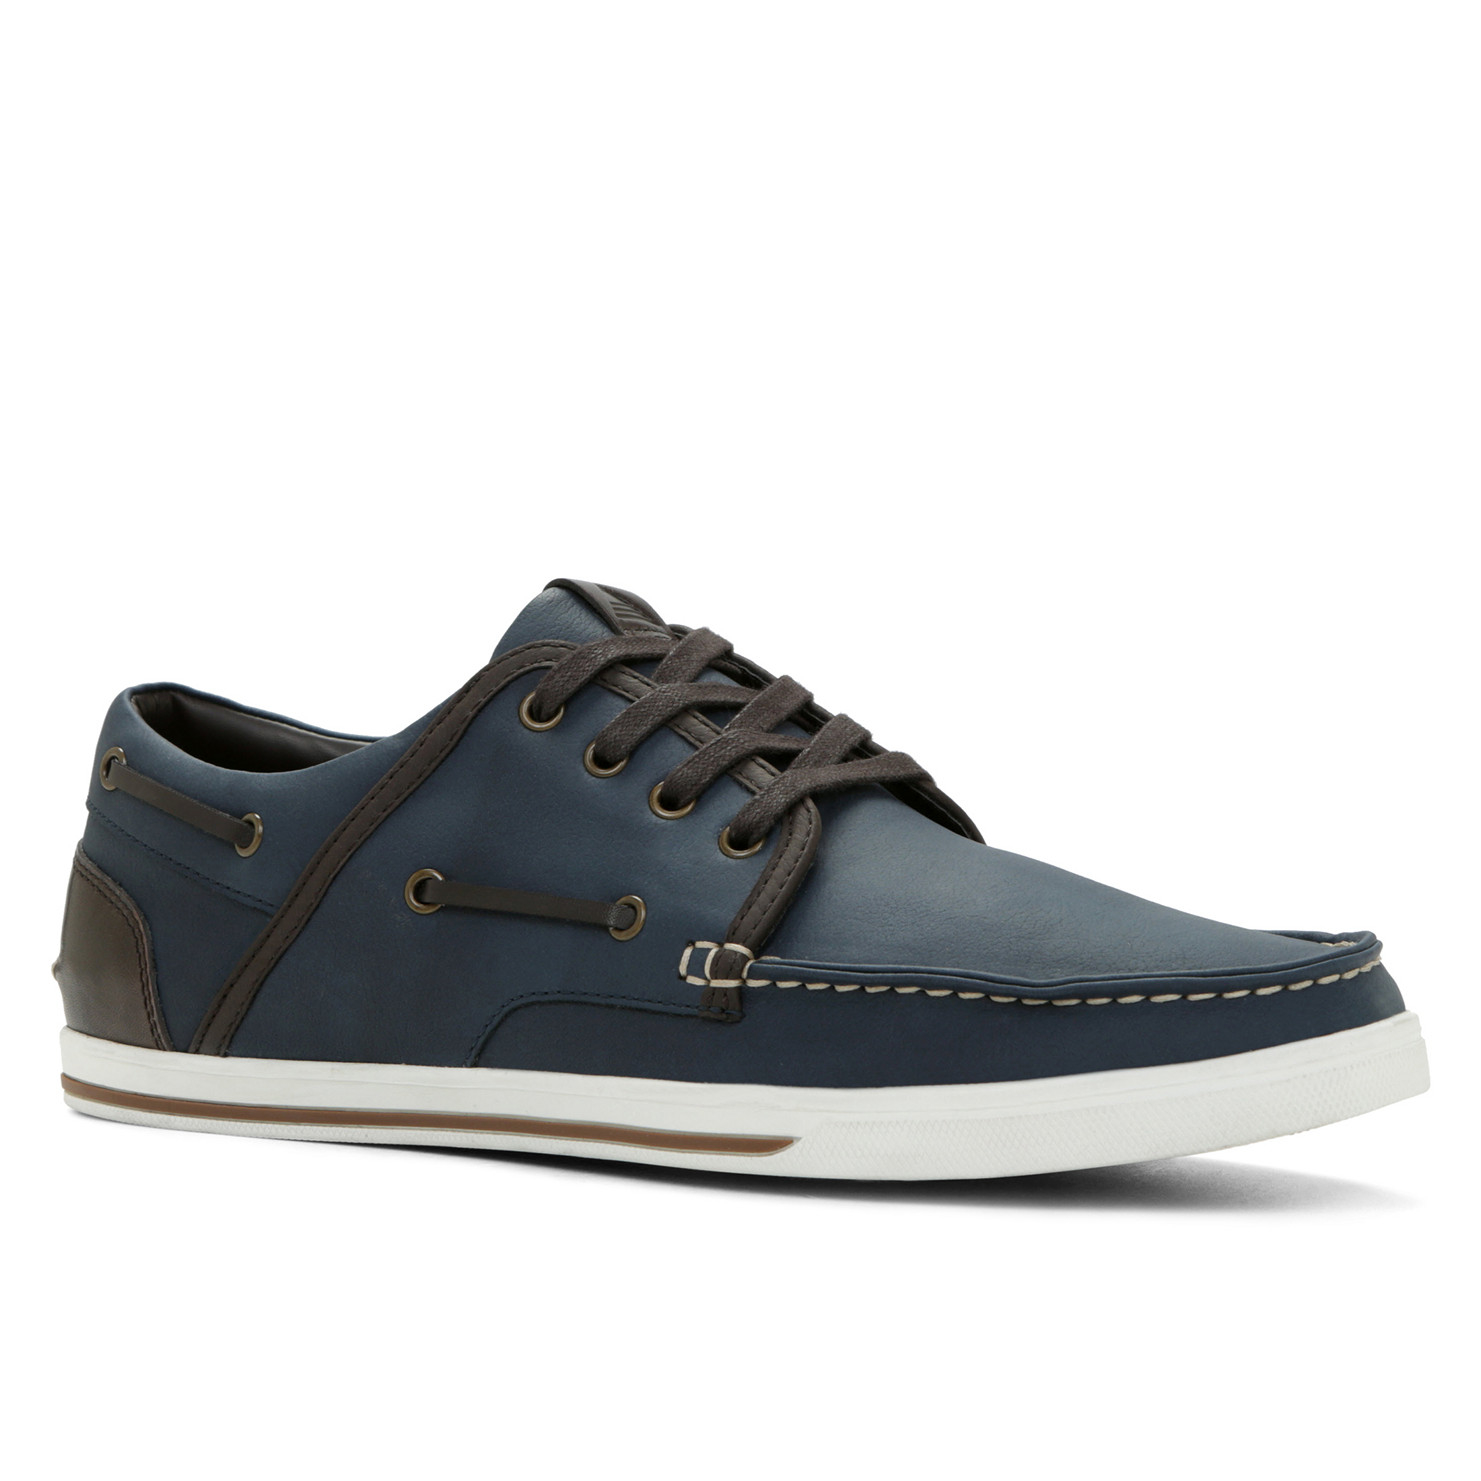 Aldo Navy Blue Oxford Shoes